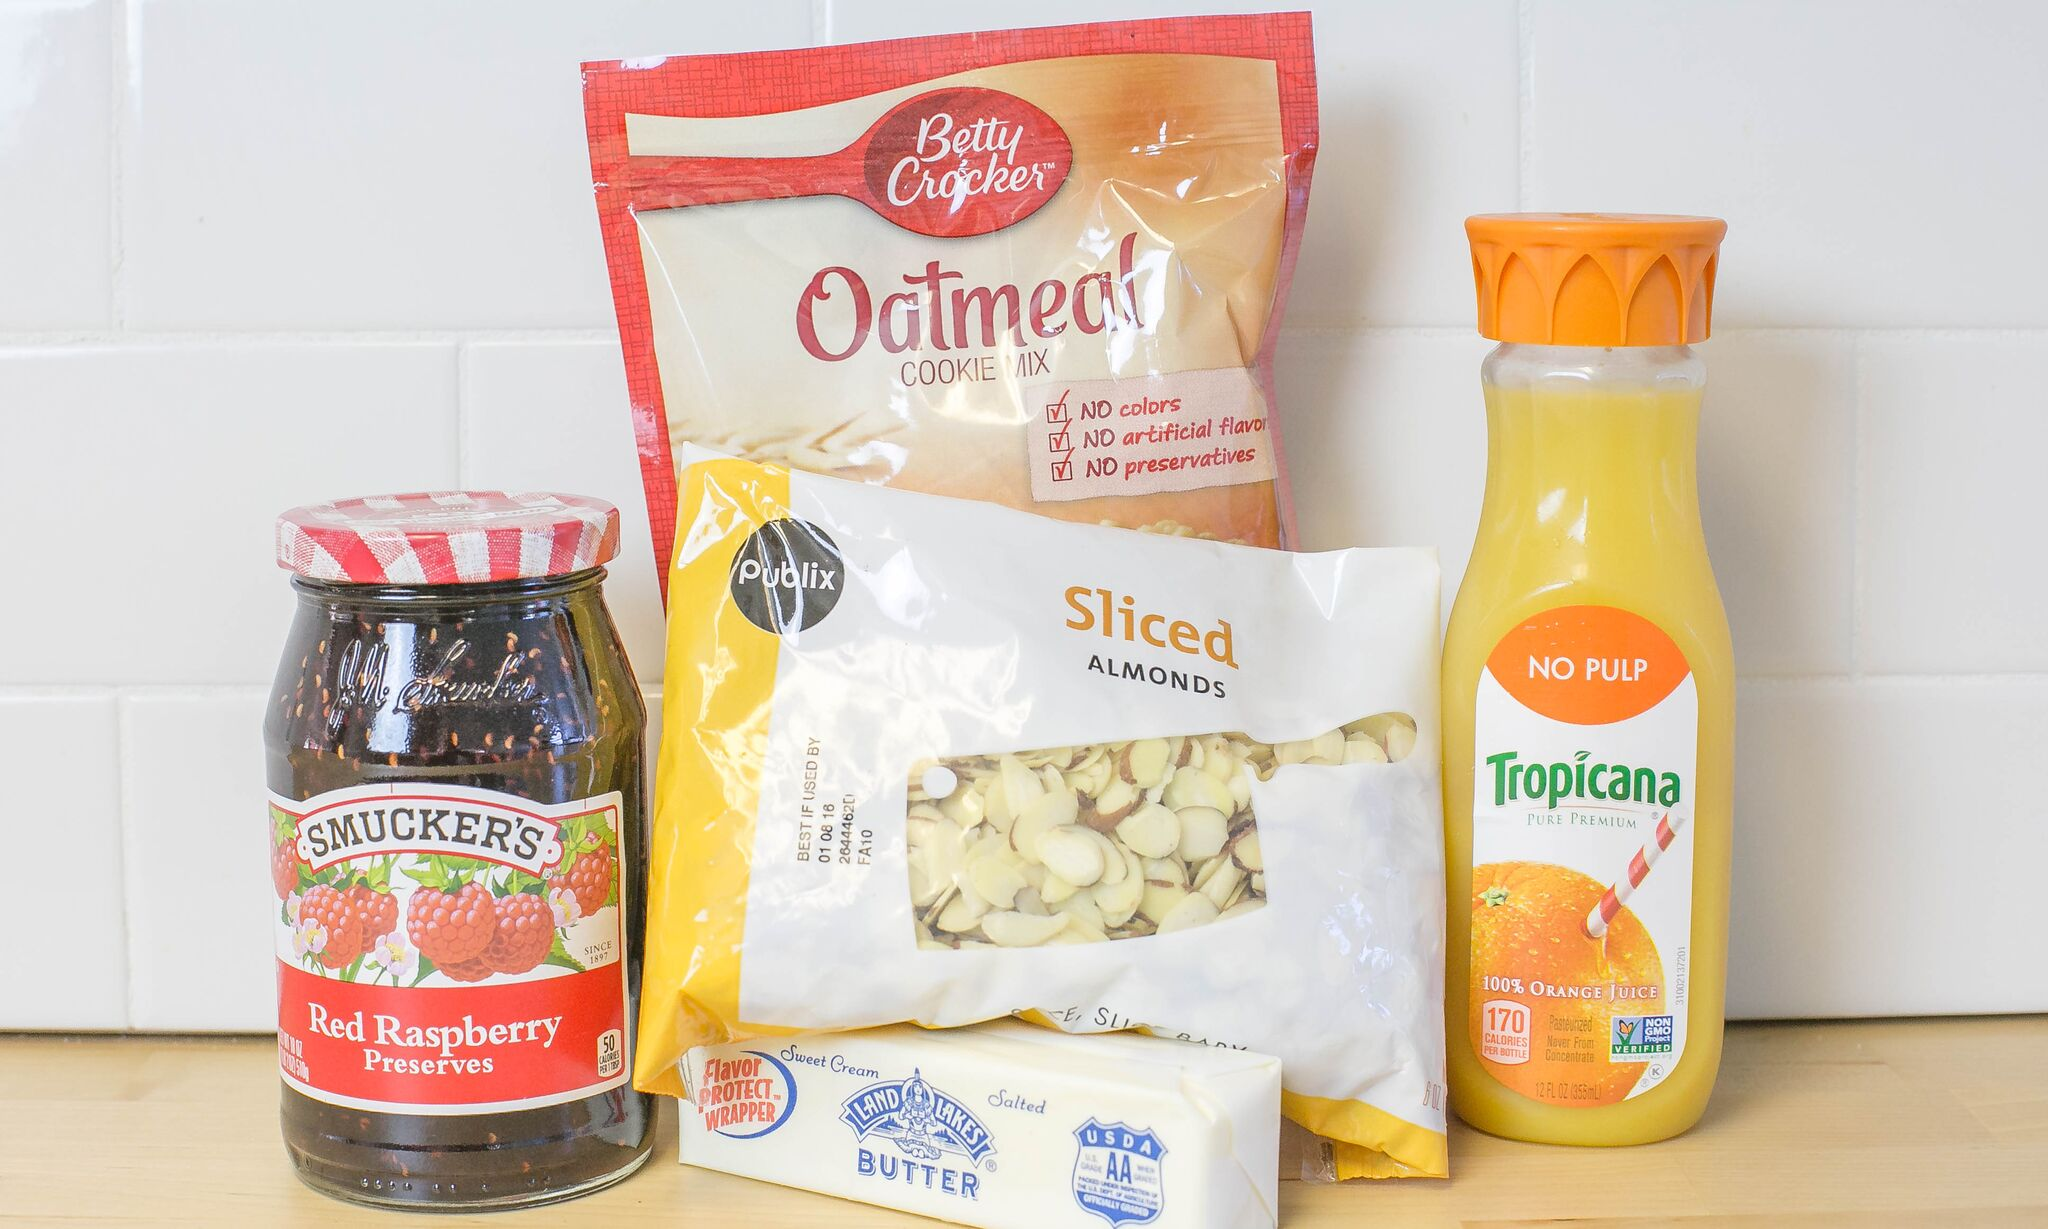 Assemble your ingredients for the raspberry jam crumb bars: butter, sliced almonds, orange juice, and oatmeal cookie mix.